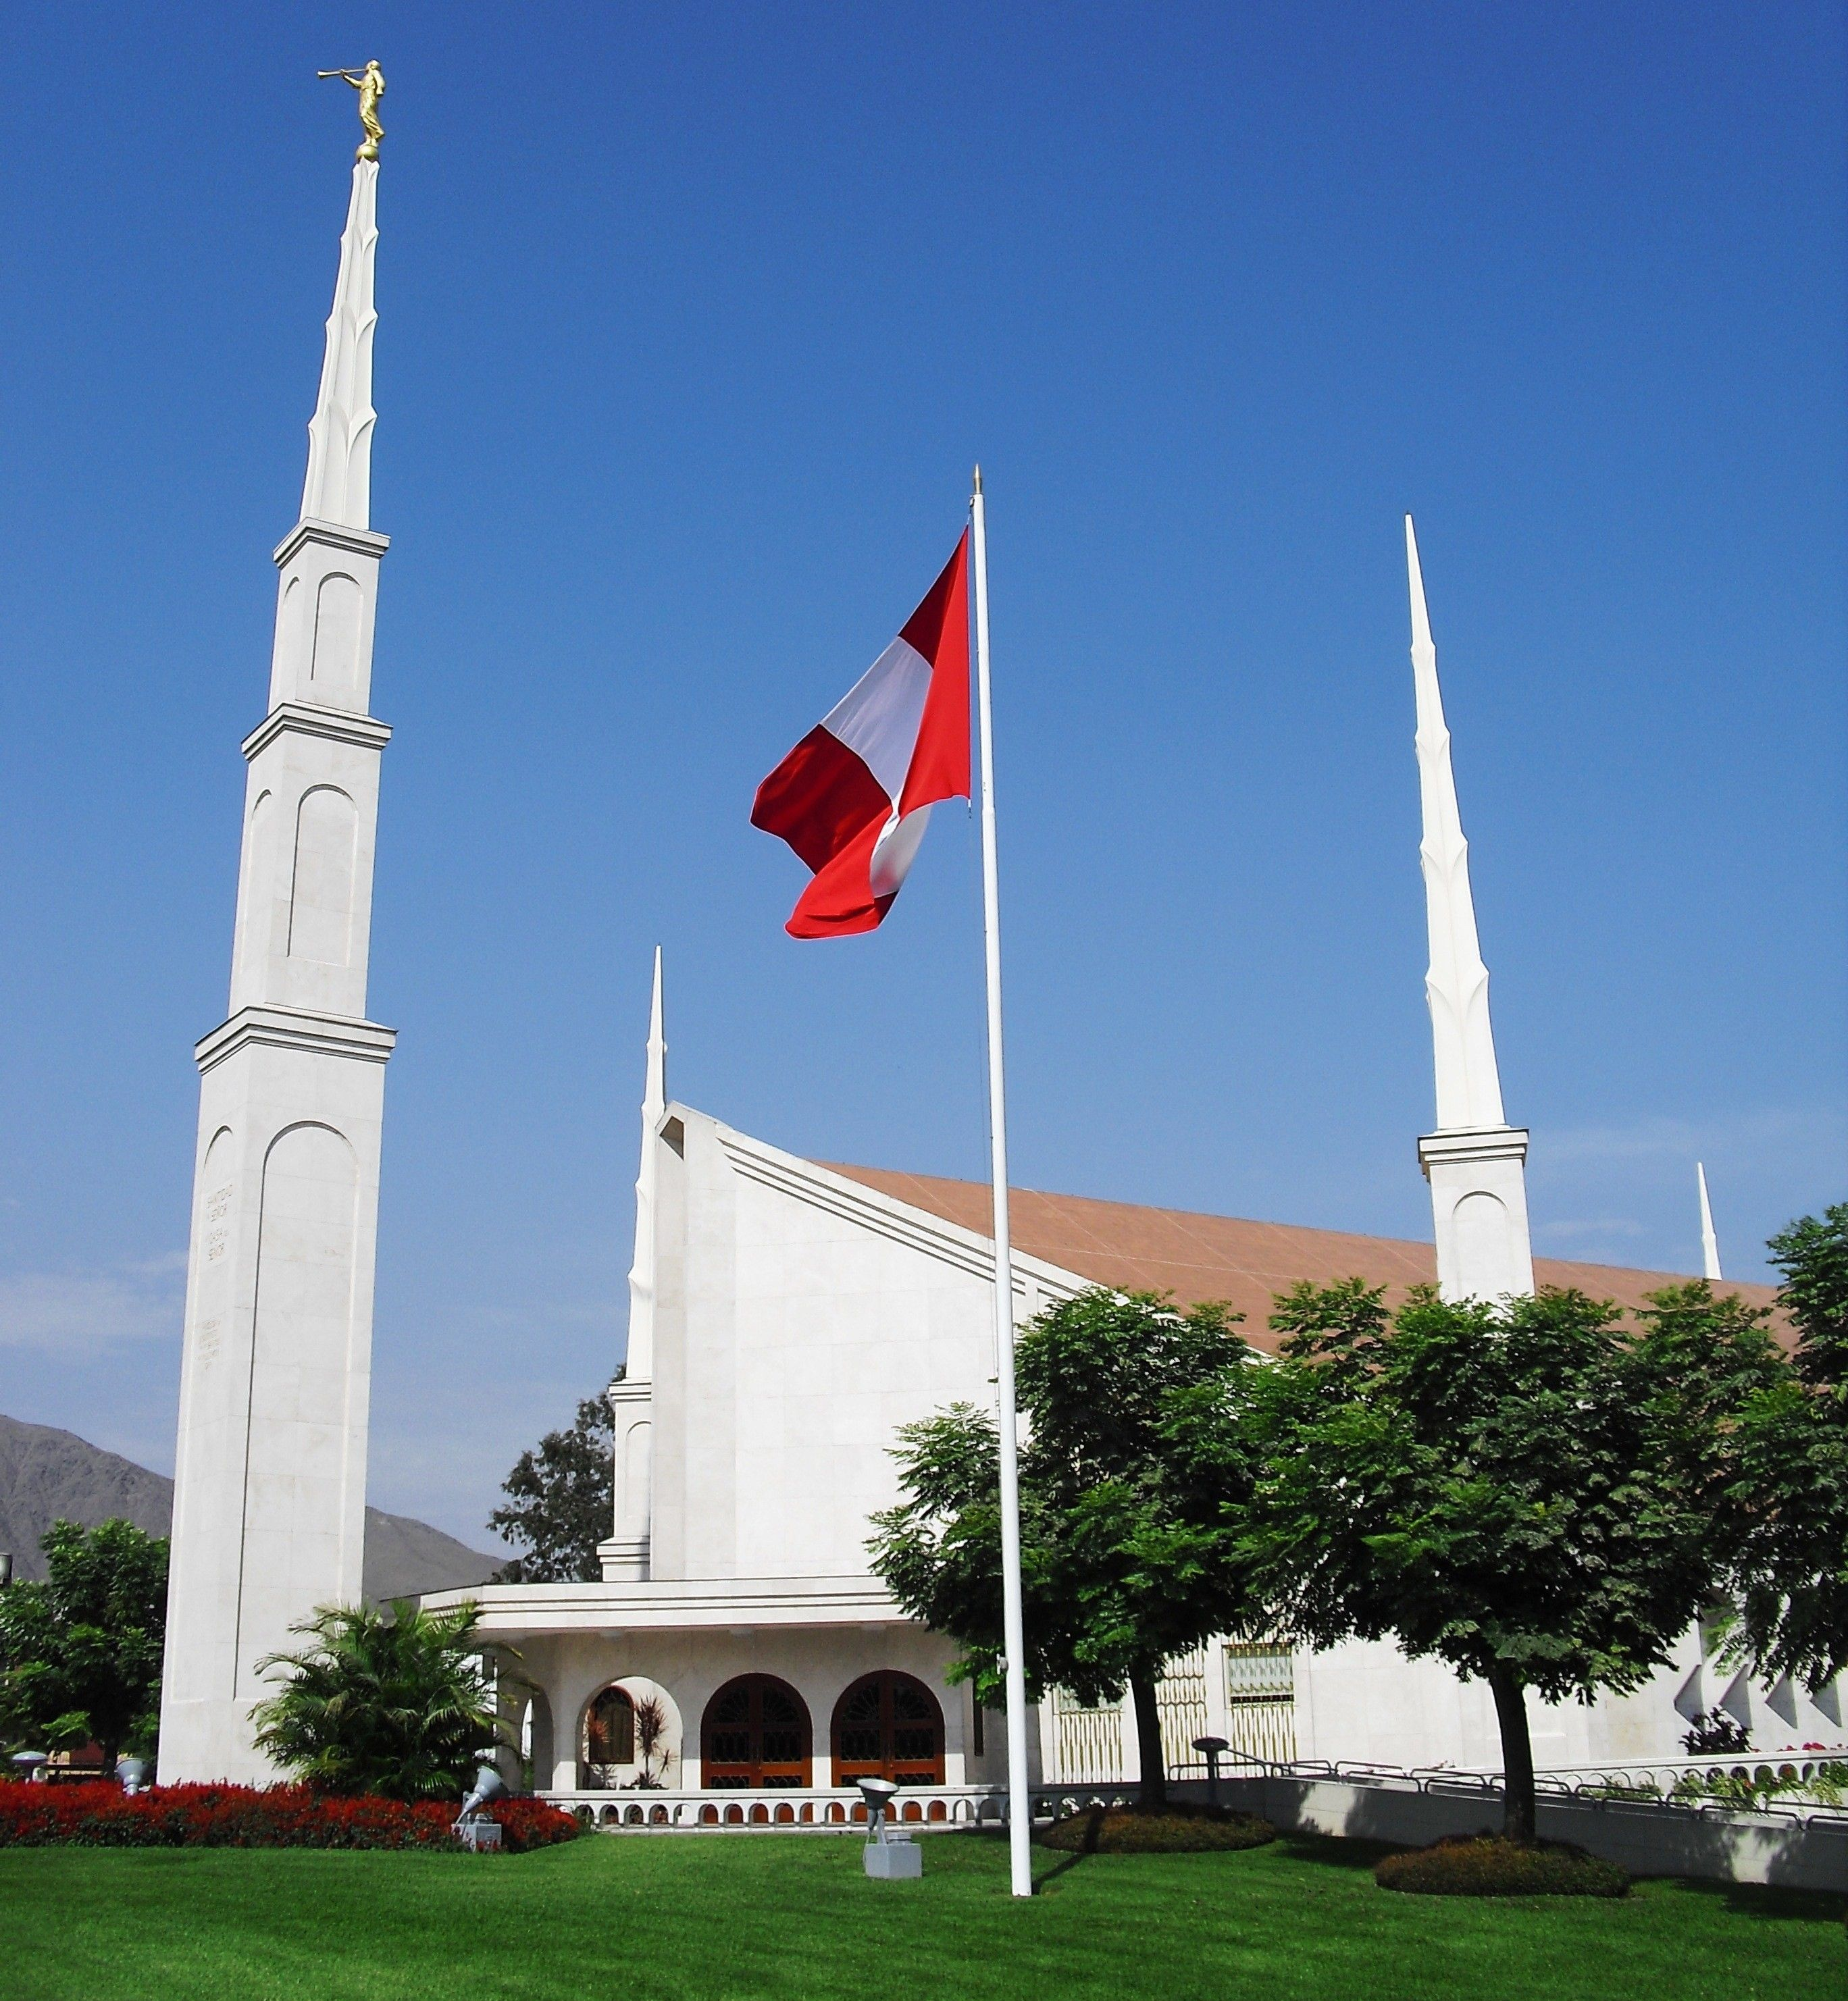 The Lima Peru Temple spires, including the entrance, scenery, and flag.